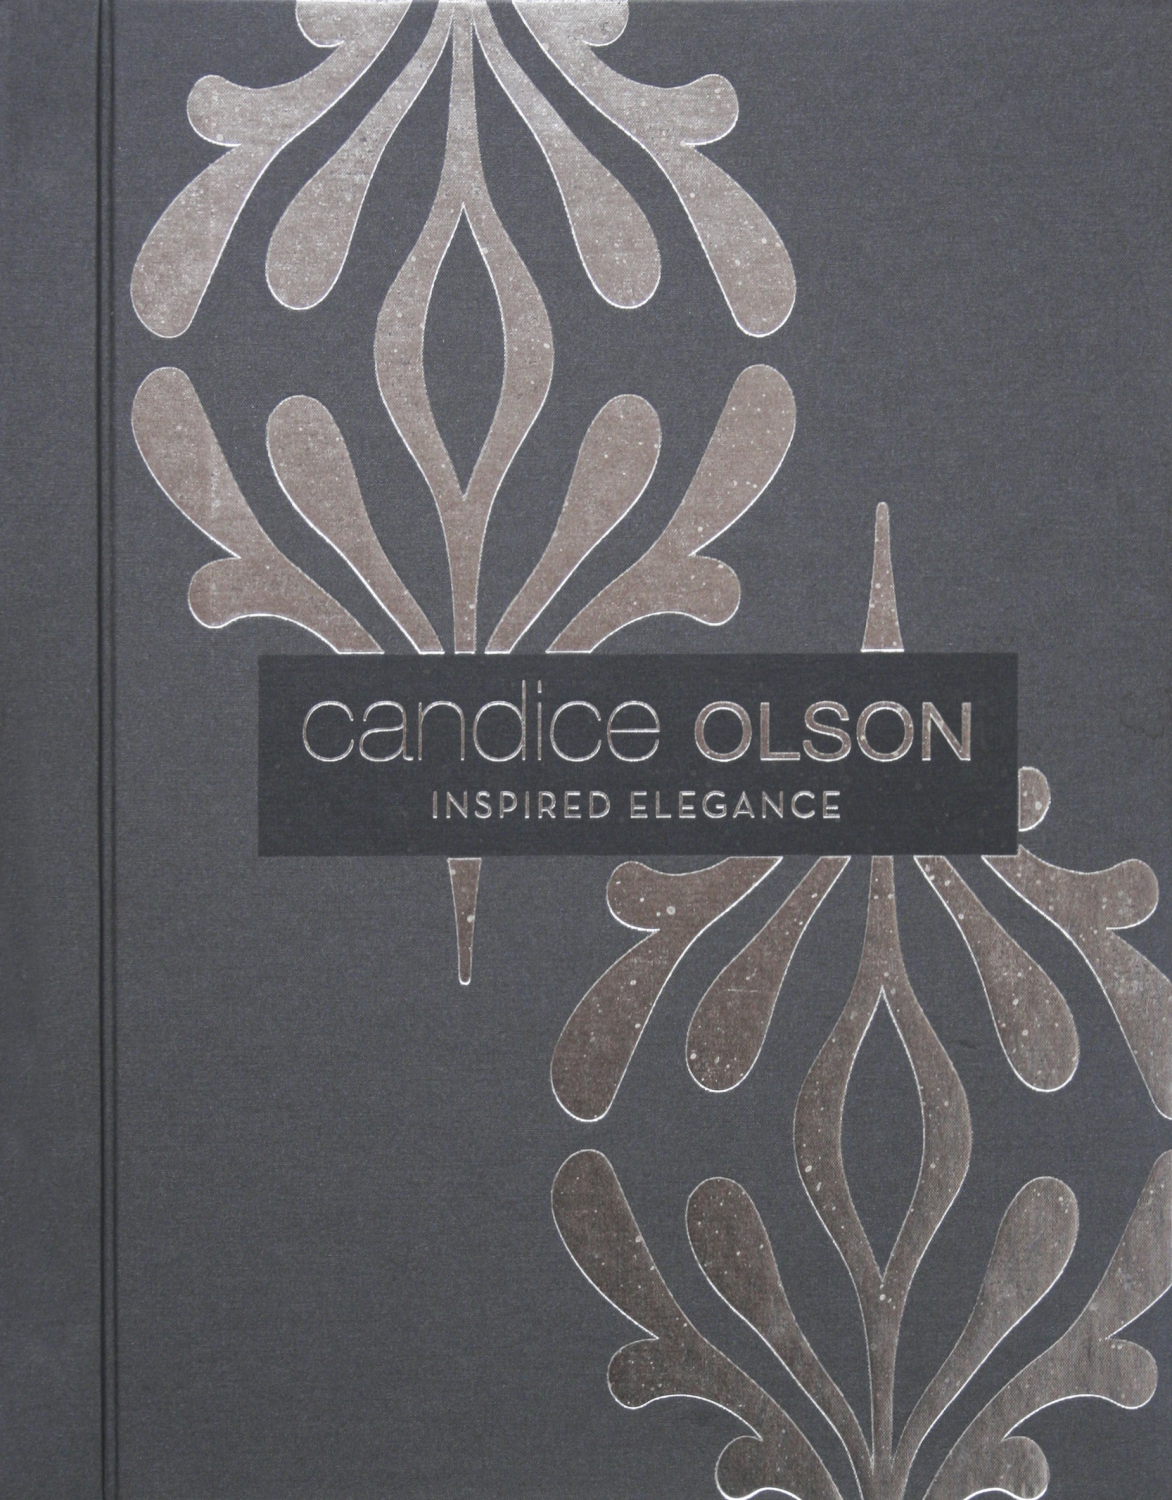 Inspired Elegance by Candice Olson